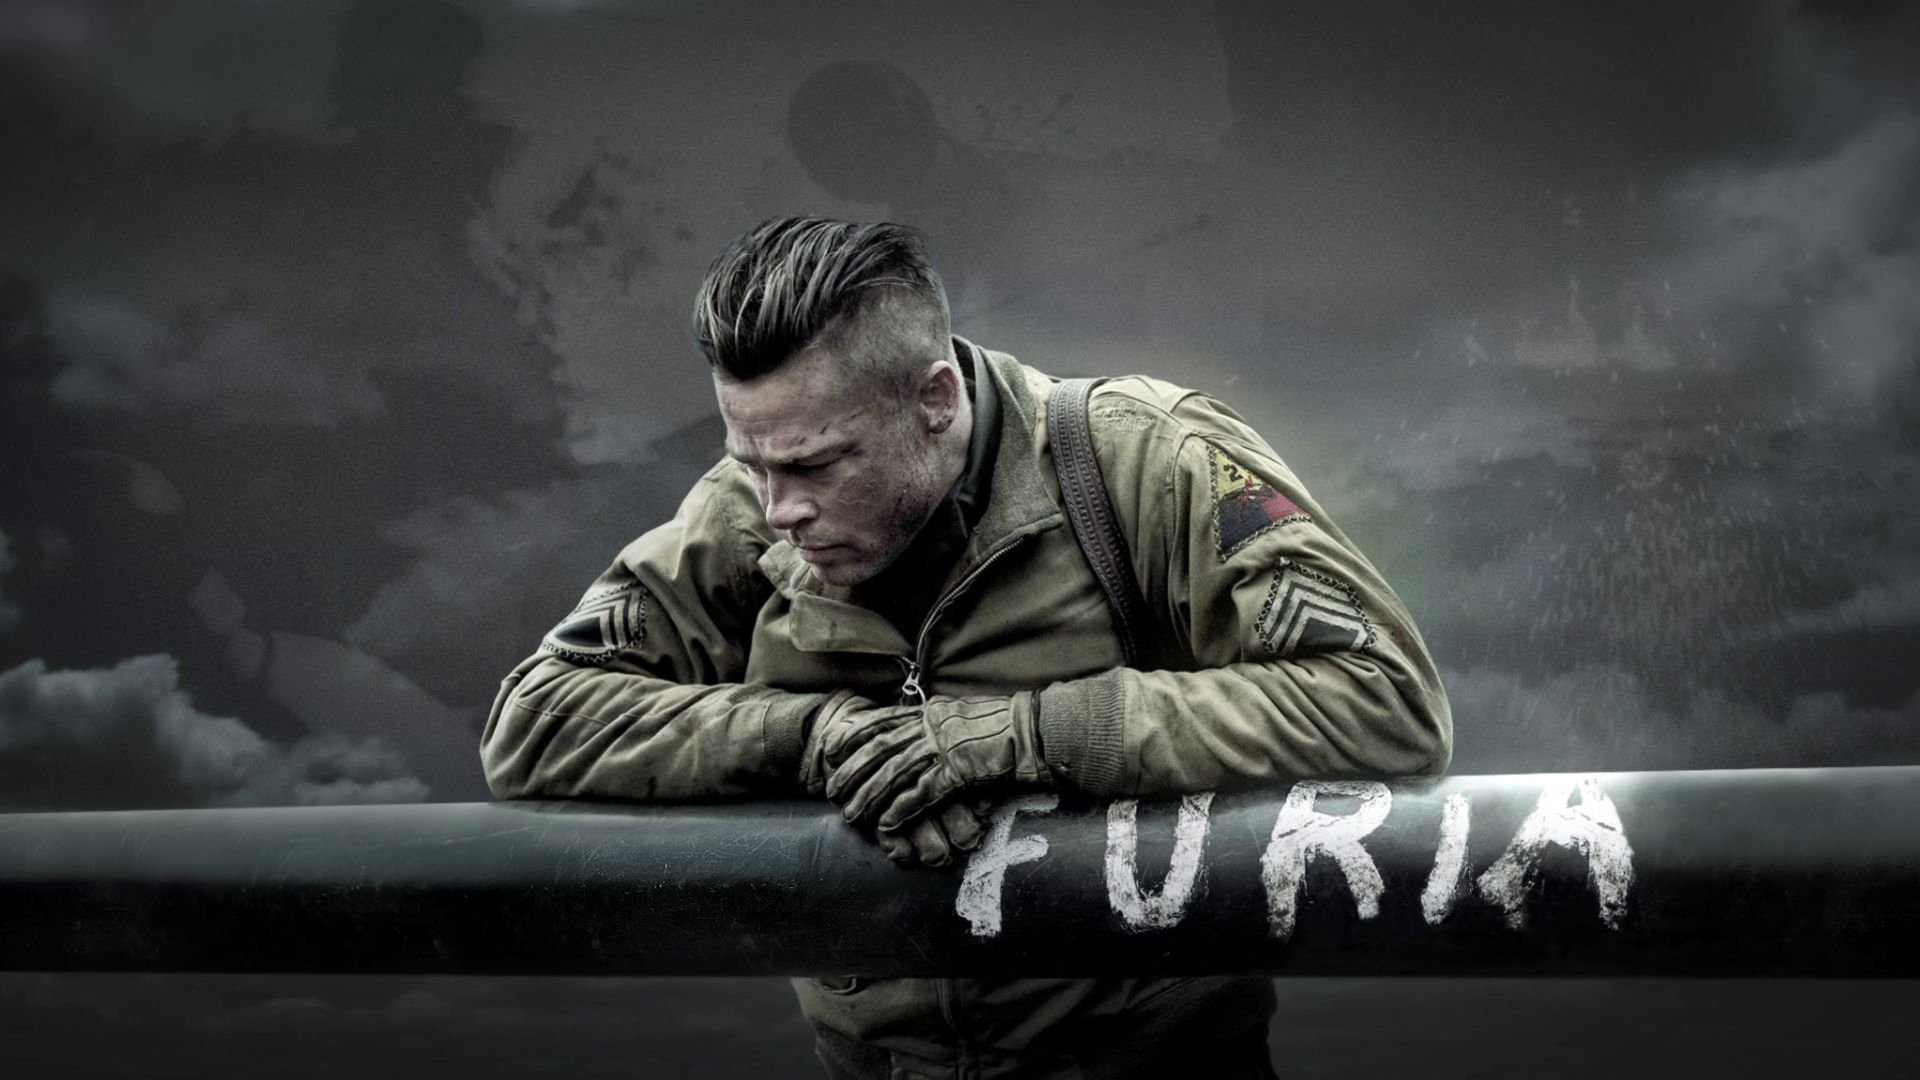 Fury HD Wallpaper   Background Image   1920x1080   ID:802791 - Wallpaper Abyss